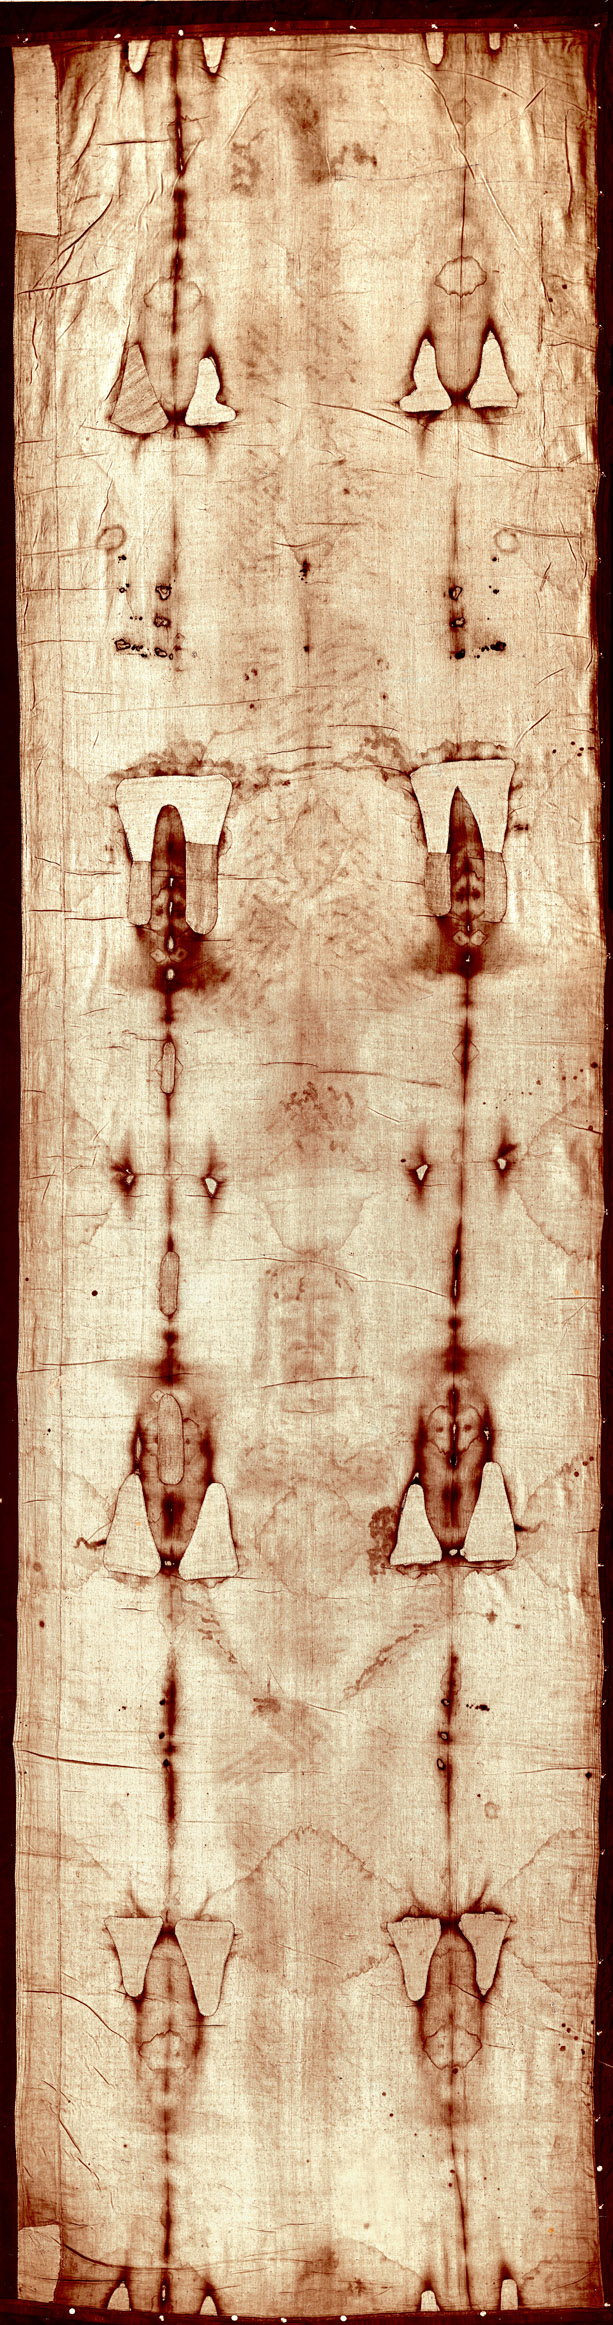 Shroud of Turin - Wikipedia